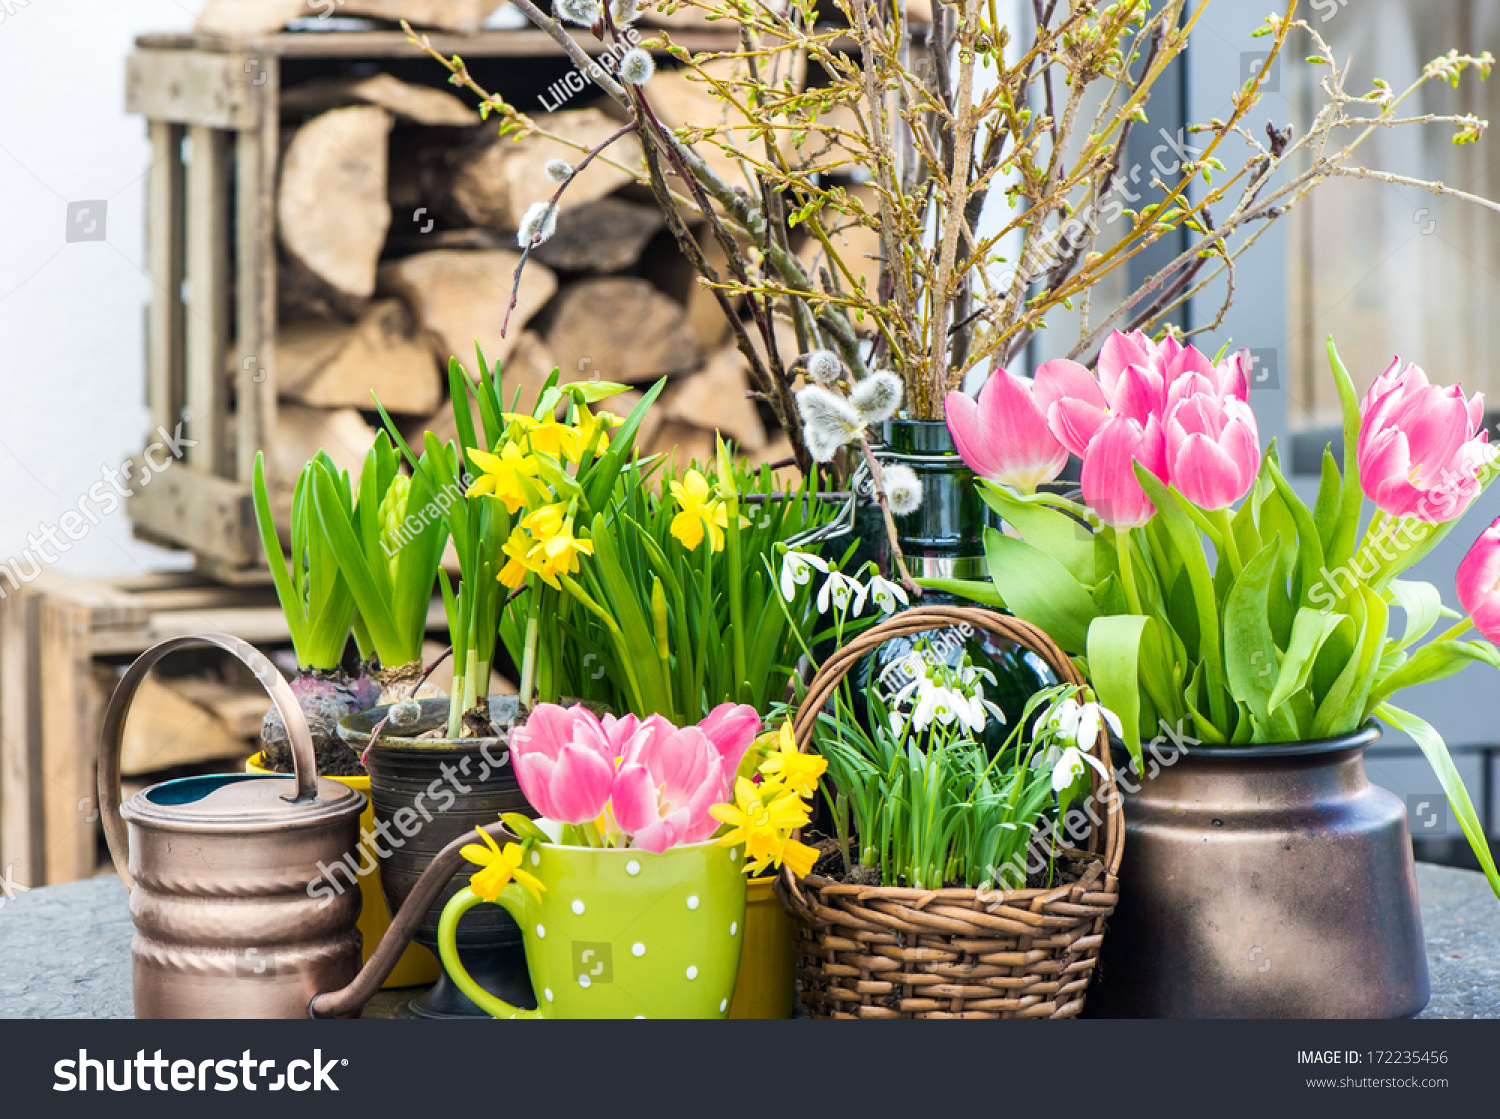 Easter Decoration Spring Flowers Tulips Snowdrops Stock Photo Edit